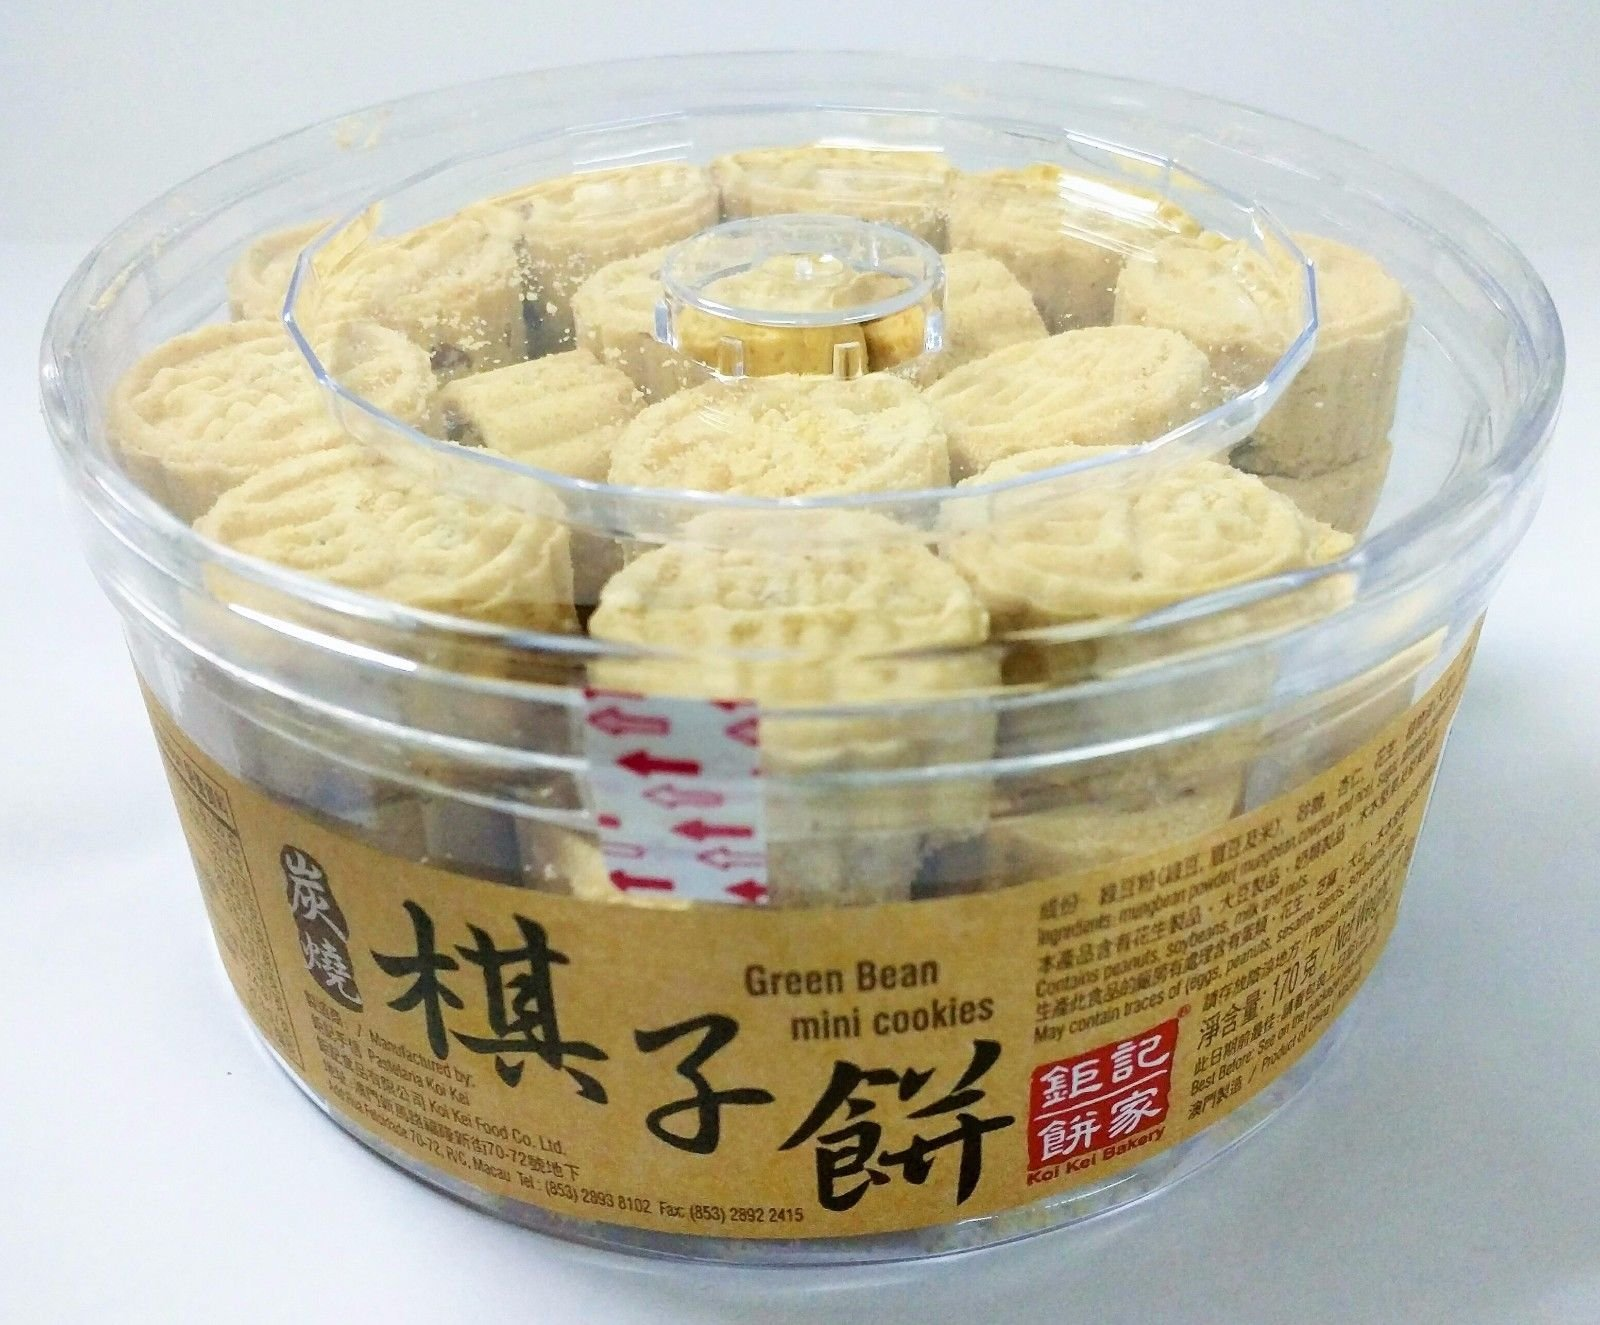 Macau Koi Kei Bakery Green Bean Almond Mini Cookies 170g by Macau Koi Kei Bakery